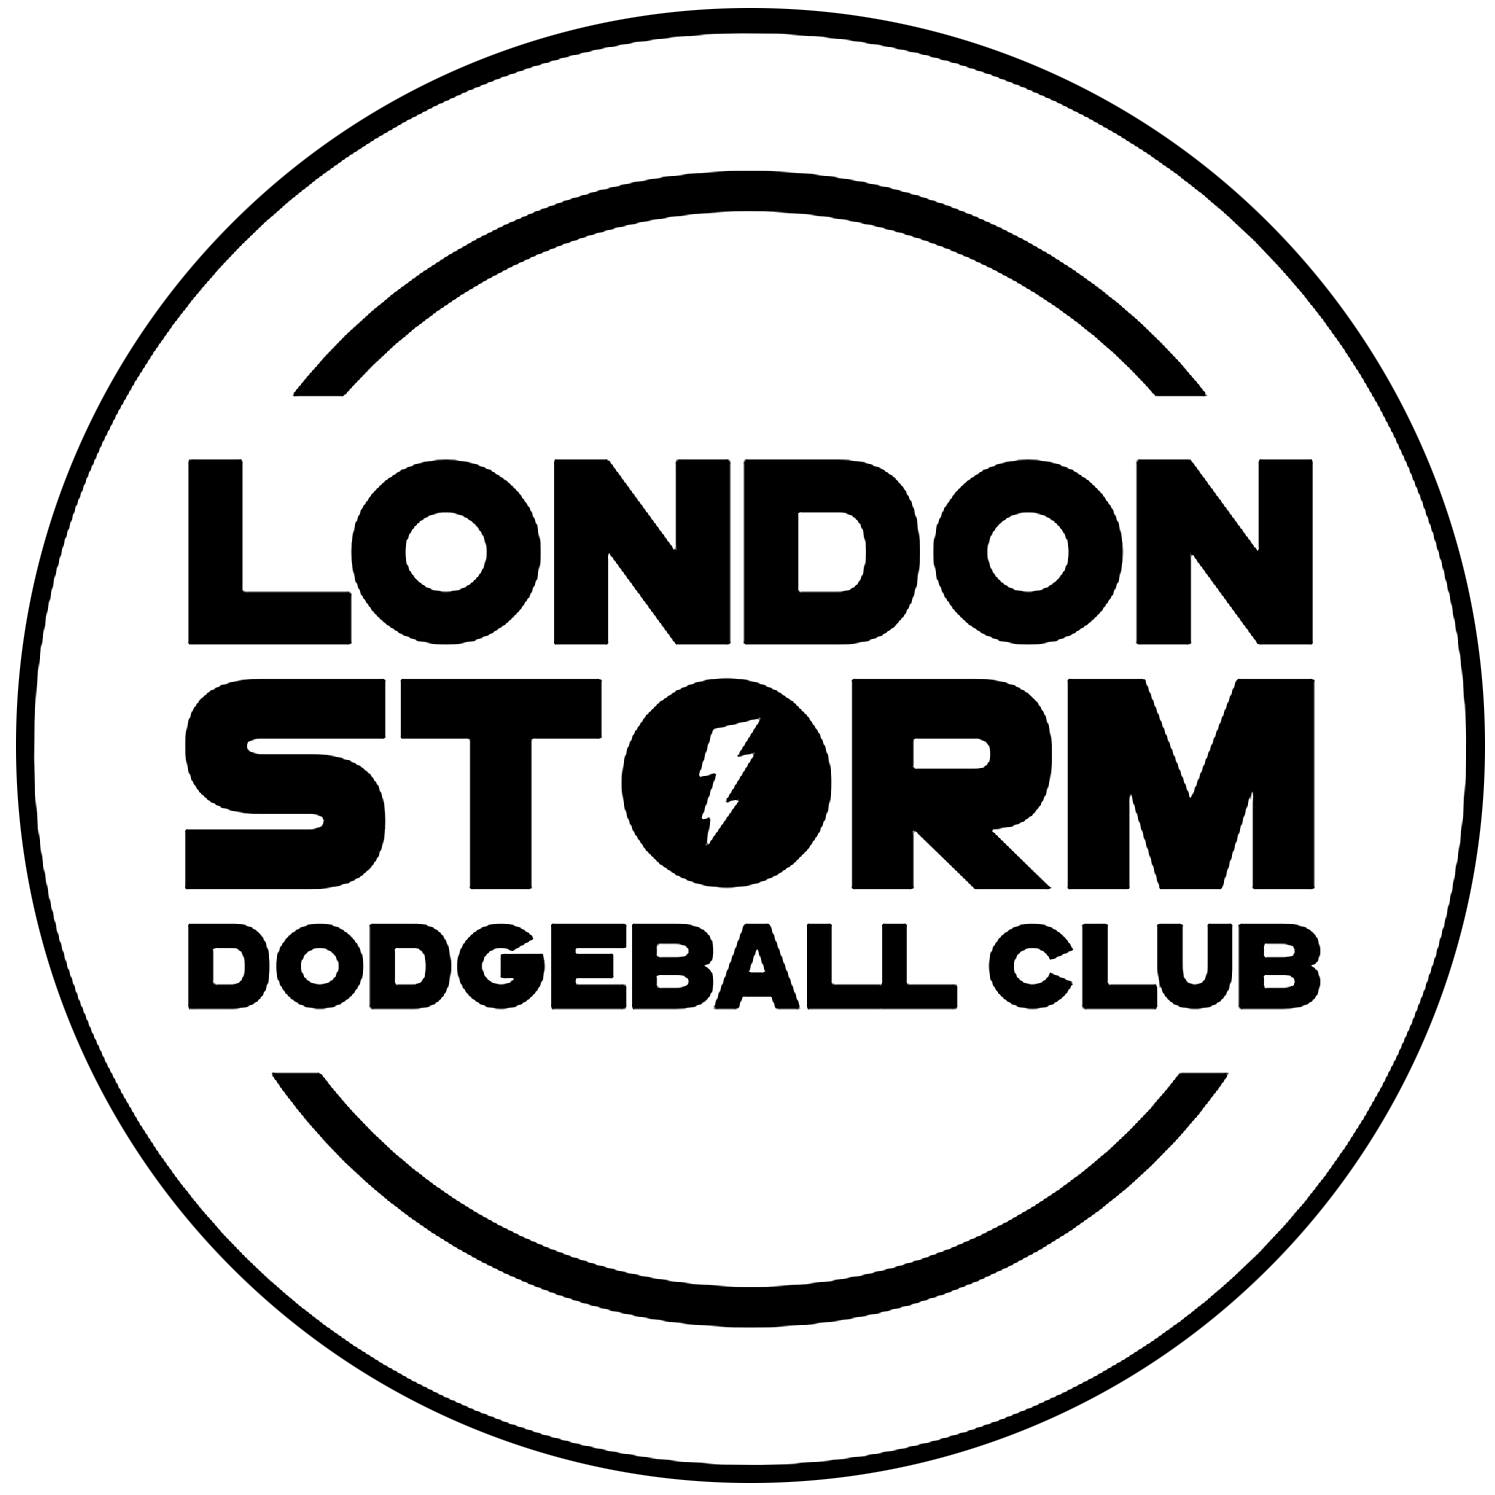 London Storm Dodgeball Club